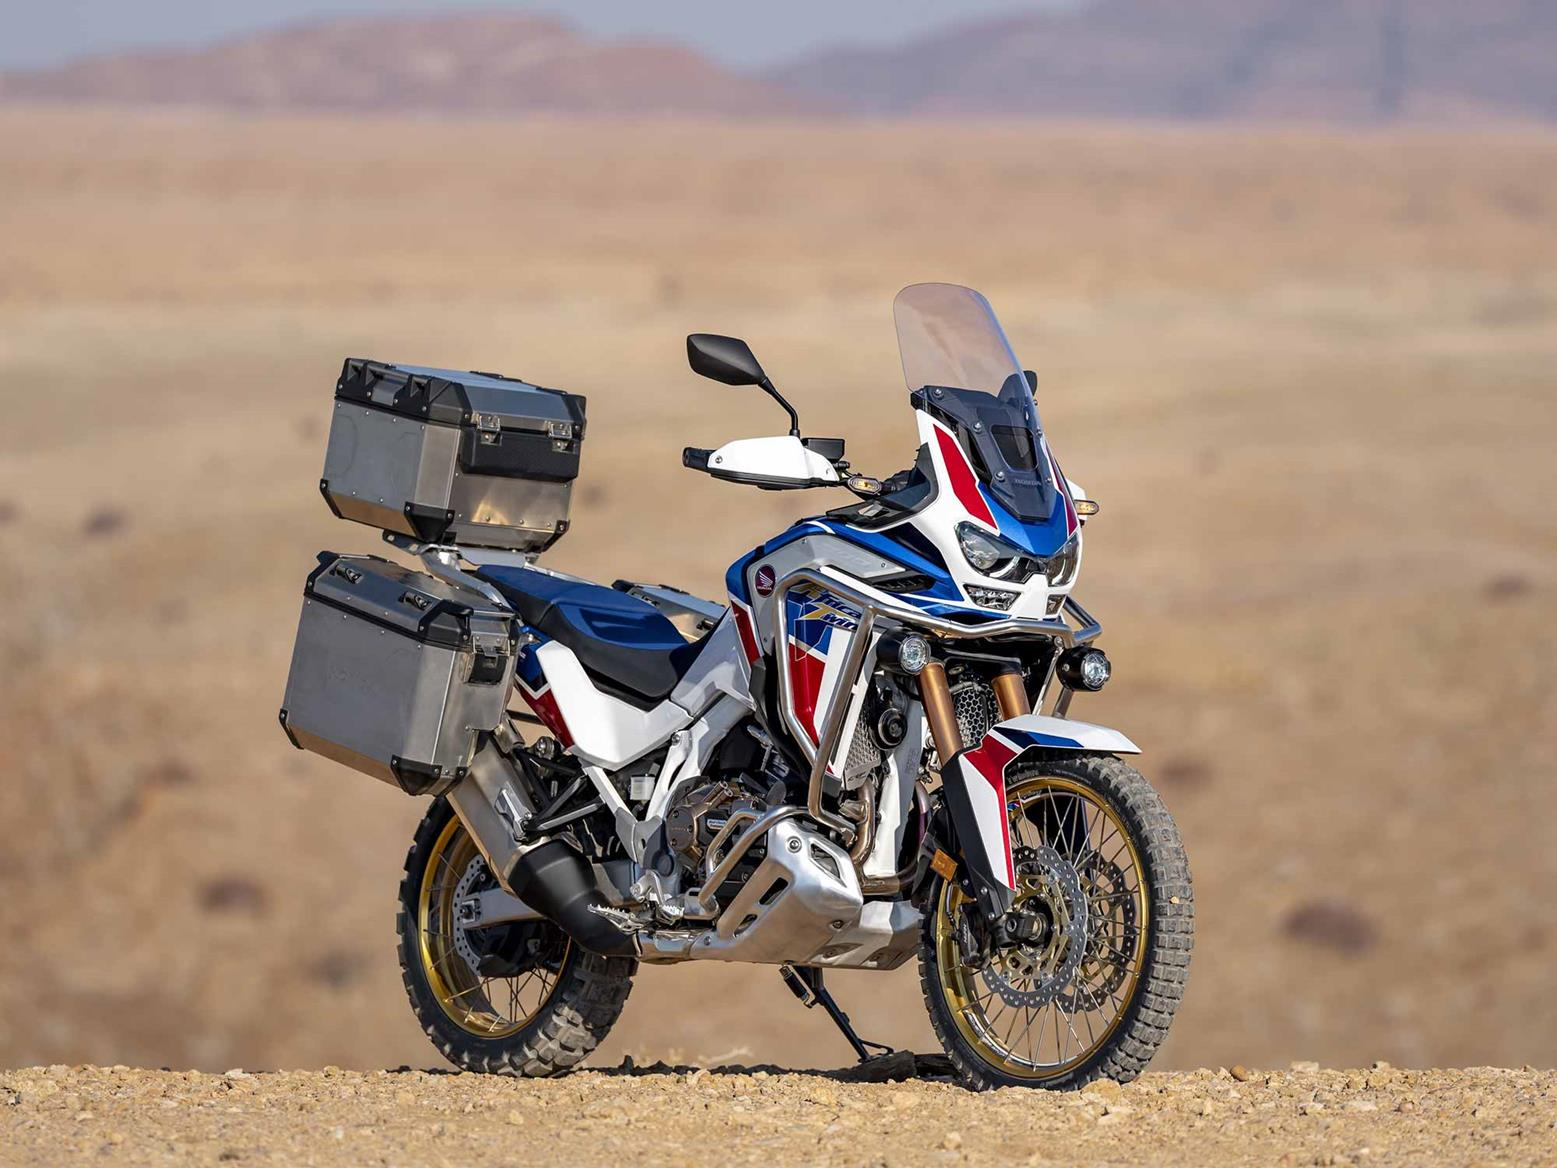 Honda CRF1100L Africa Twin Adventure Sport parked off-road